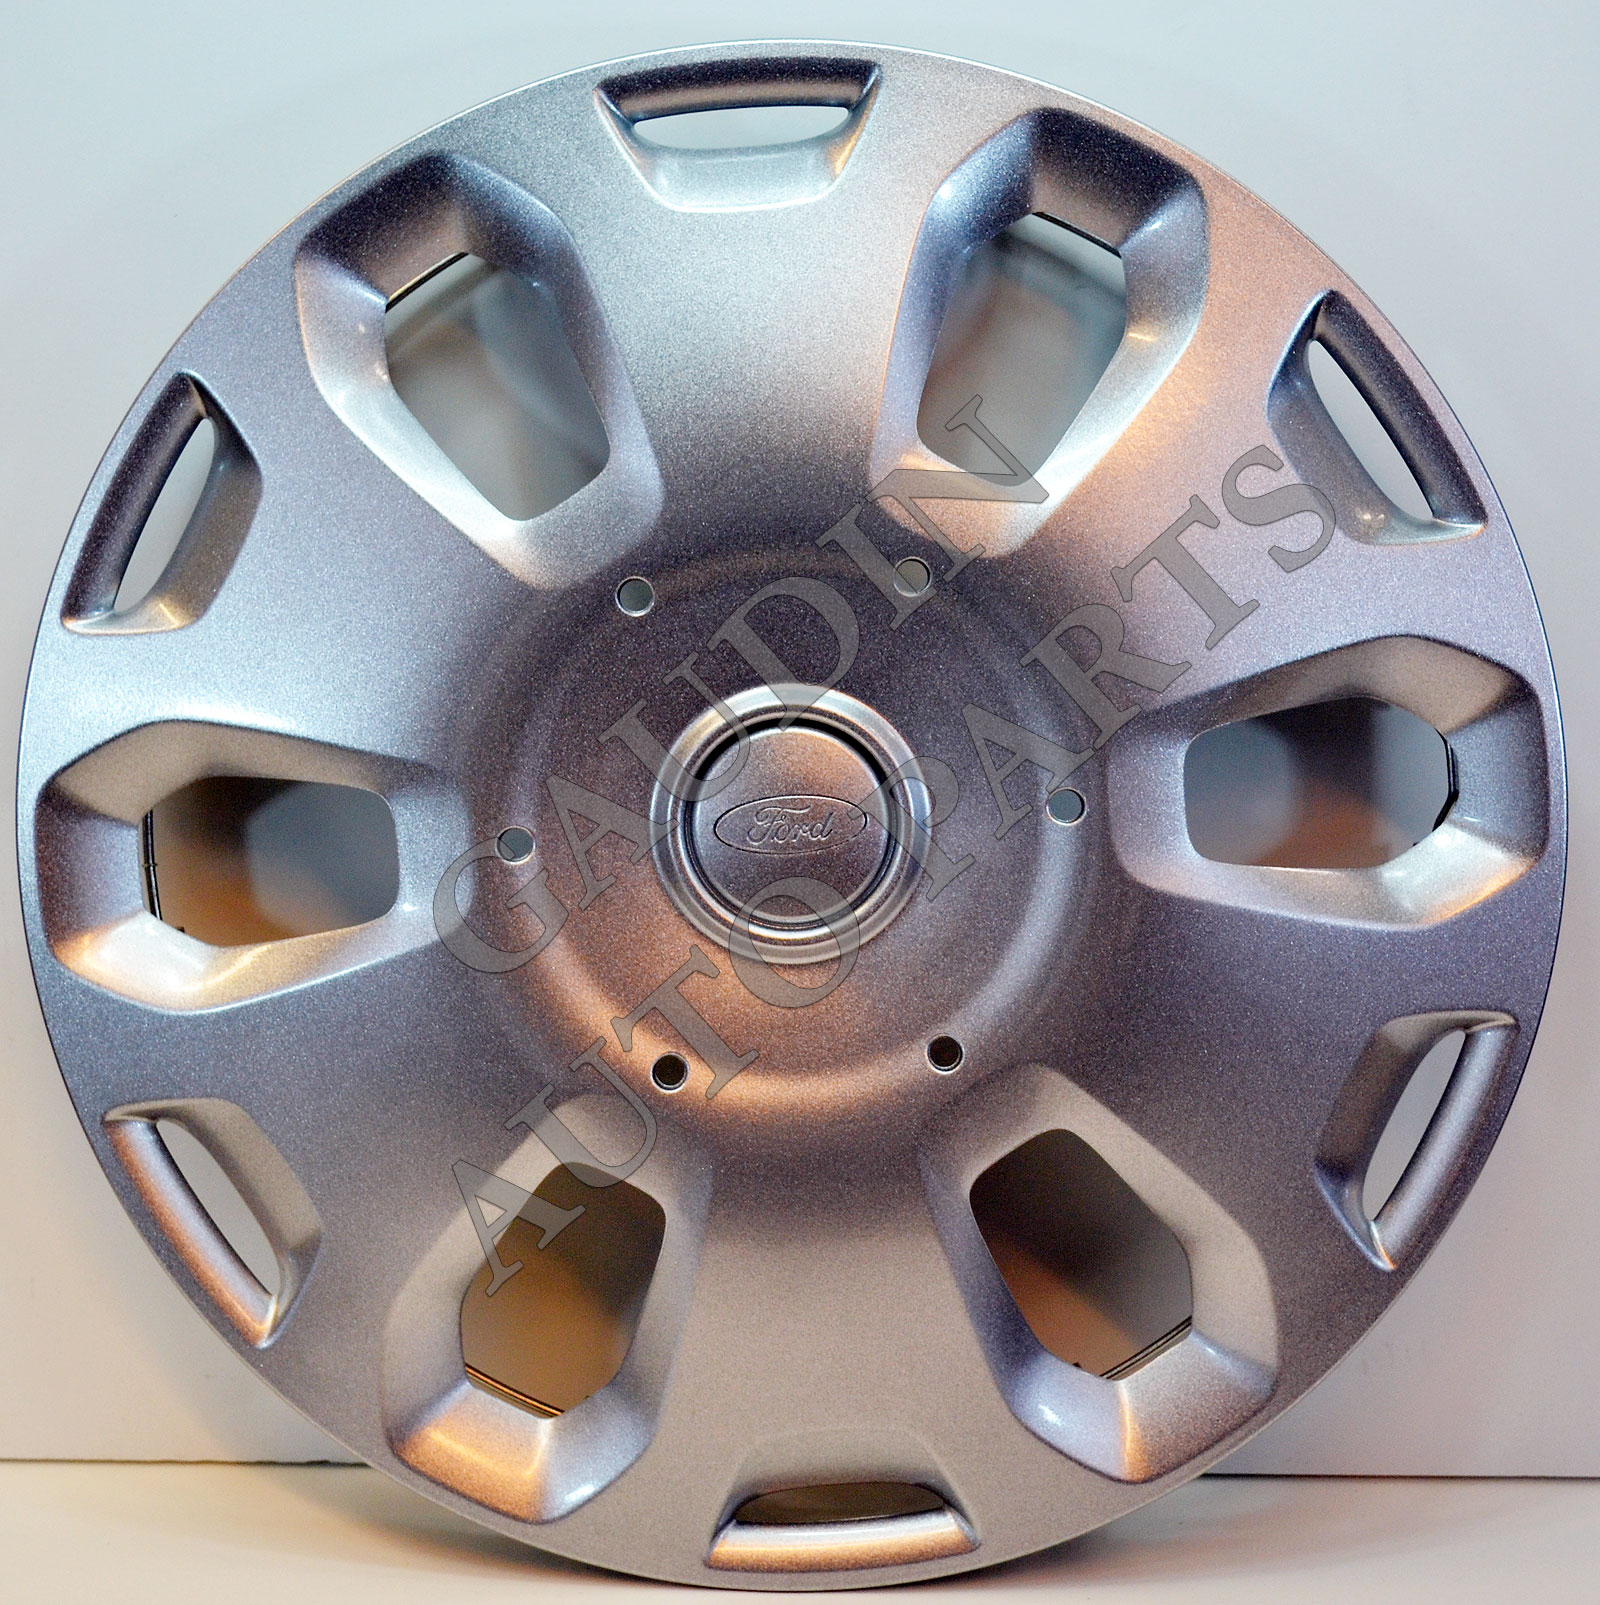 Buy Used 2012 Ford Transit Connect Xlt Premium Mini: FORD OEM 10-13 Transit Connect Wheel Cover-Hub Center Cap